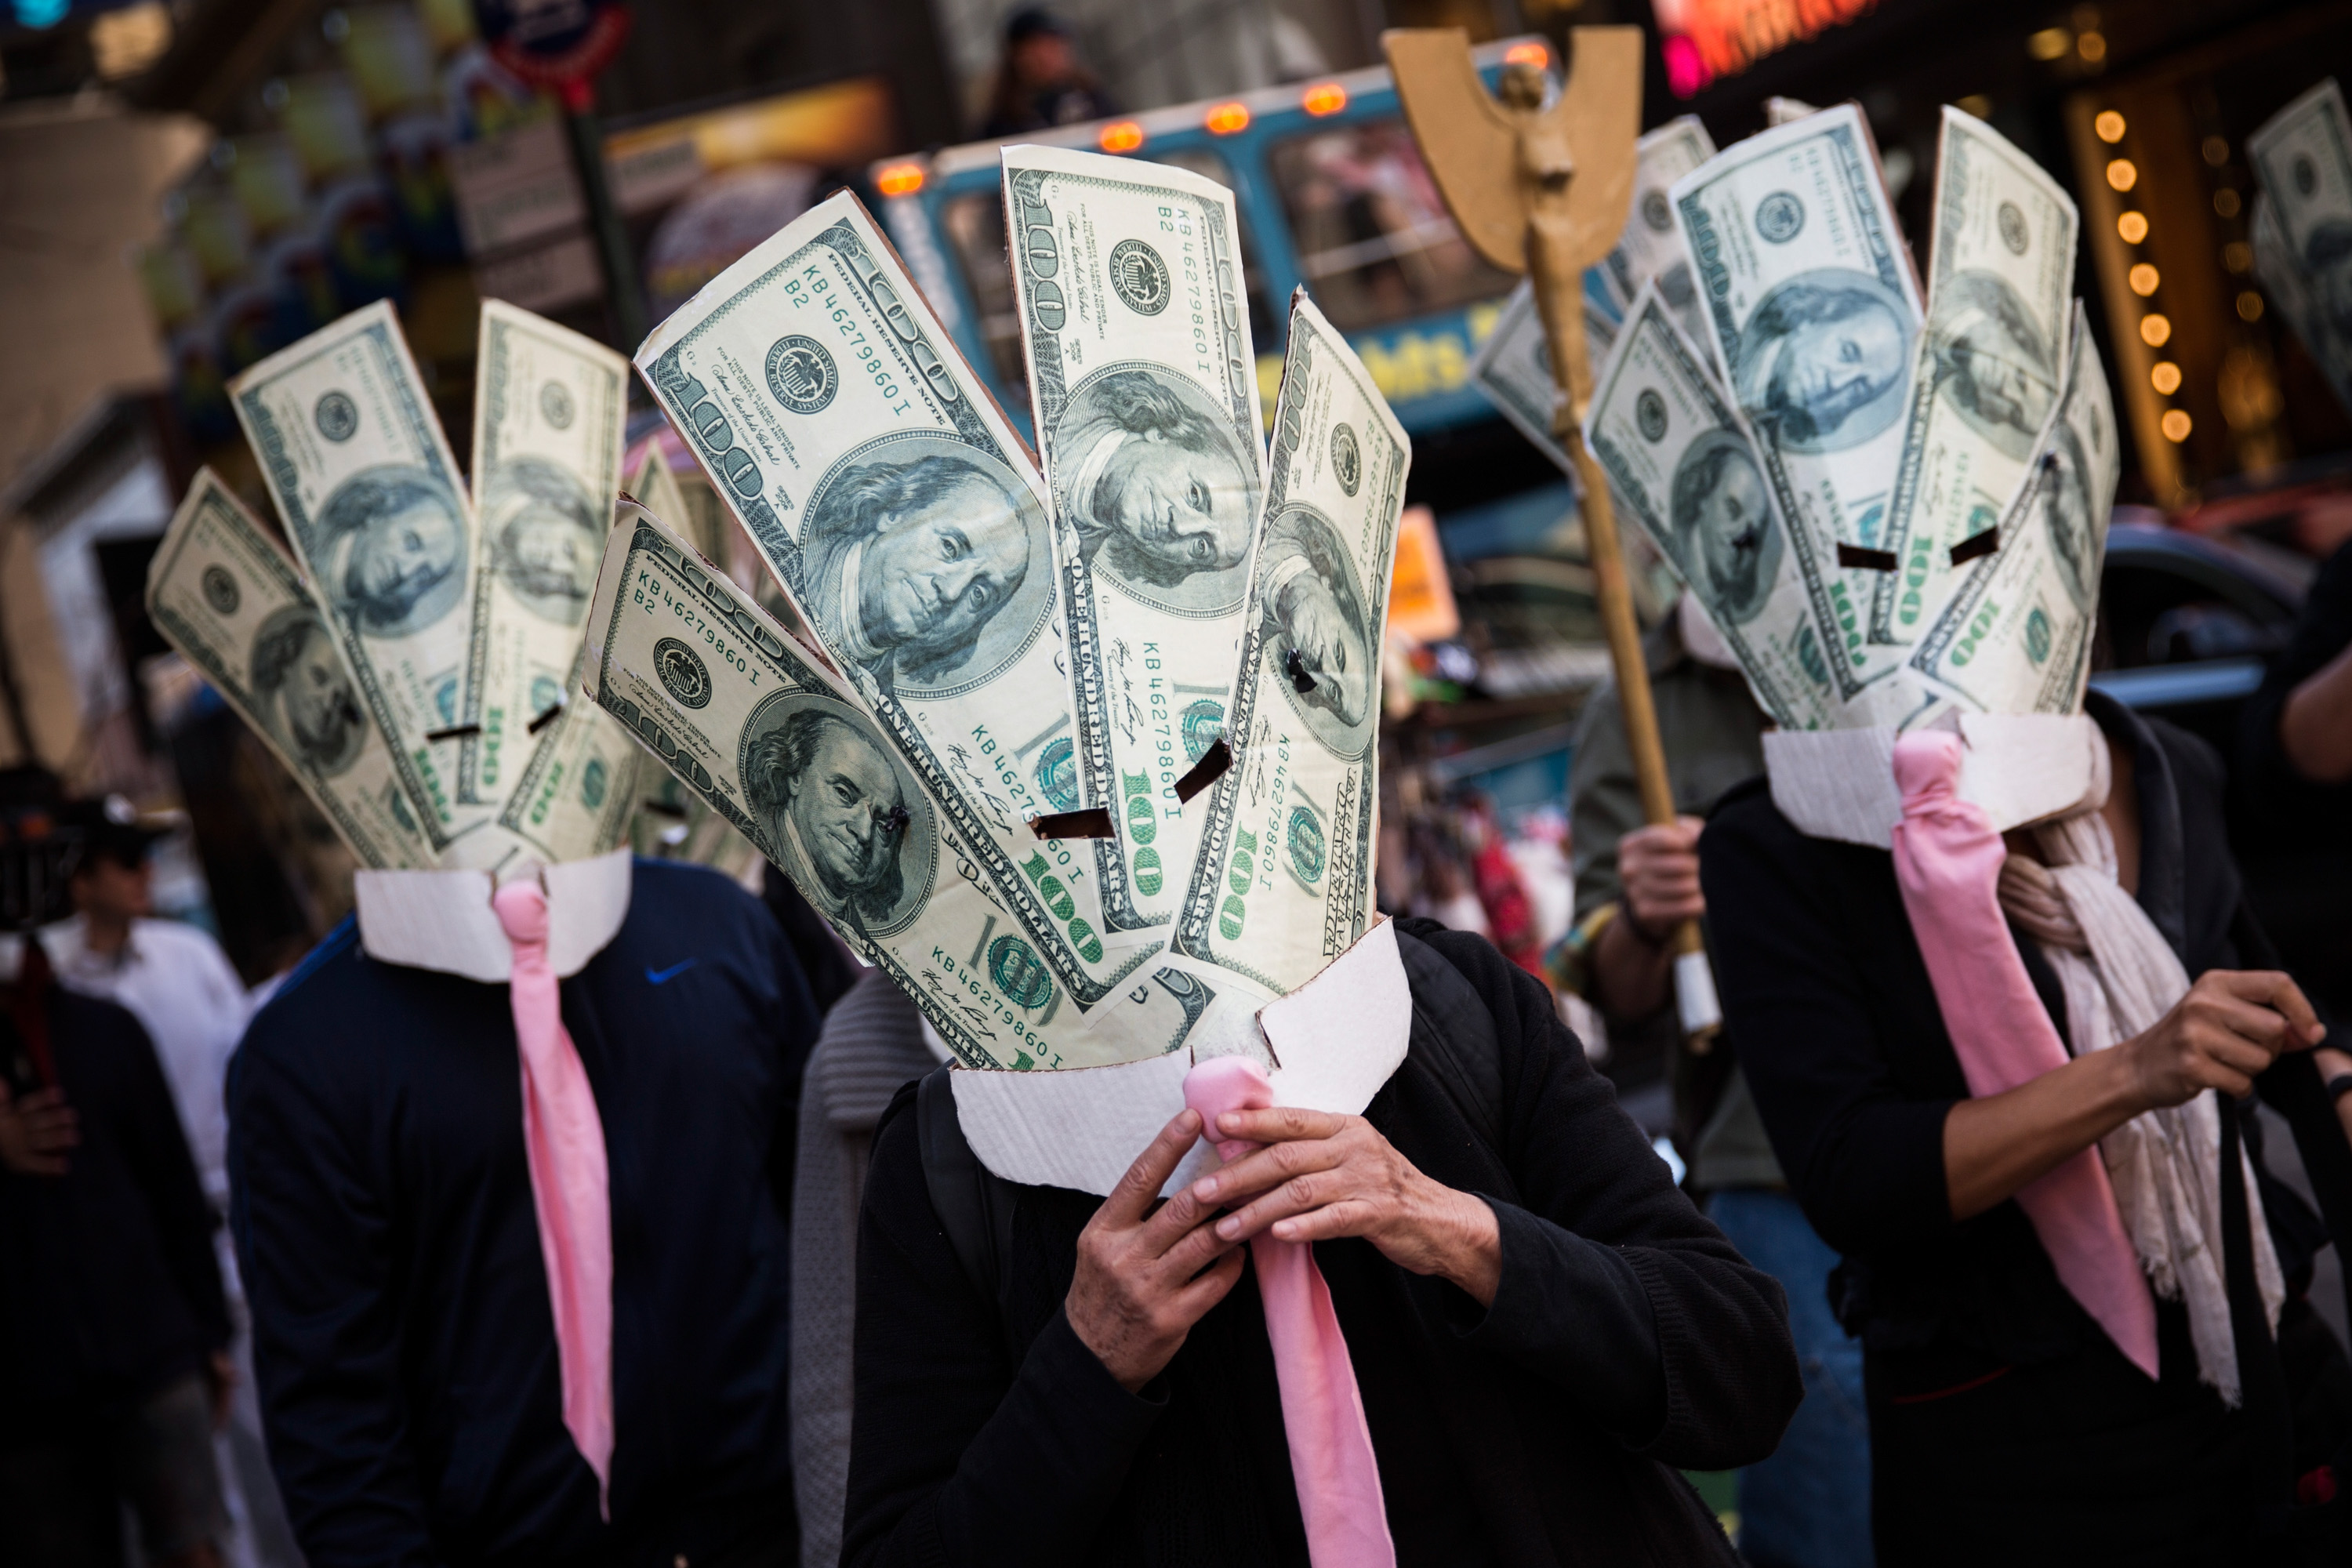 Occupy Wall Street protesters wearing masks made out of enlarged dollar bills act in a short skit in Times Square in New York City on Sept. 17, 2013